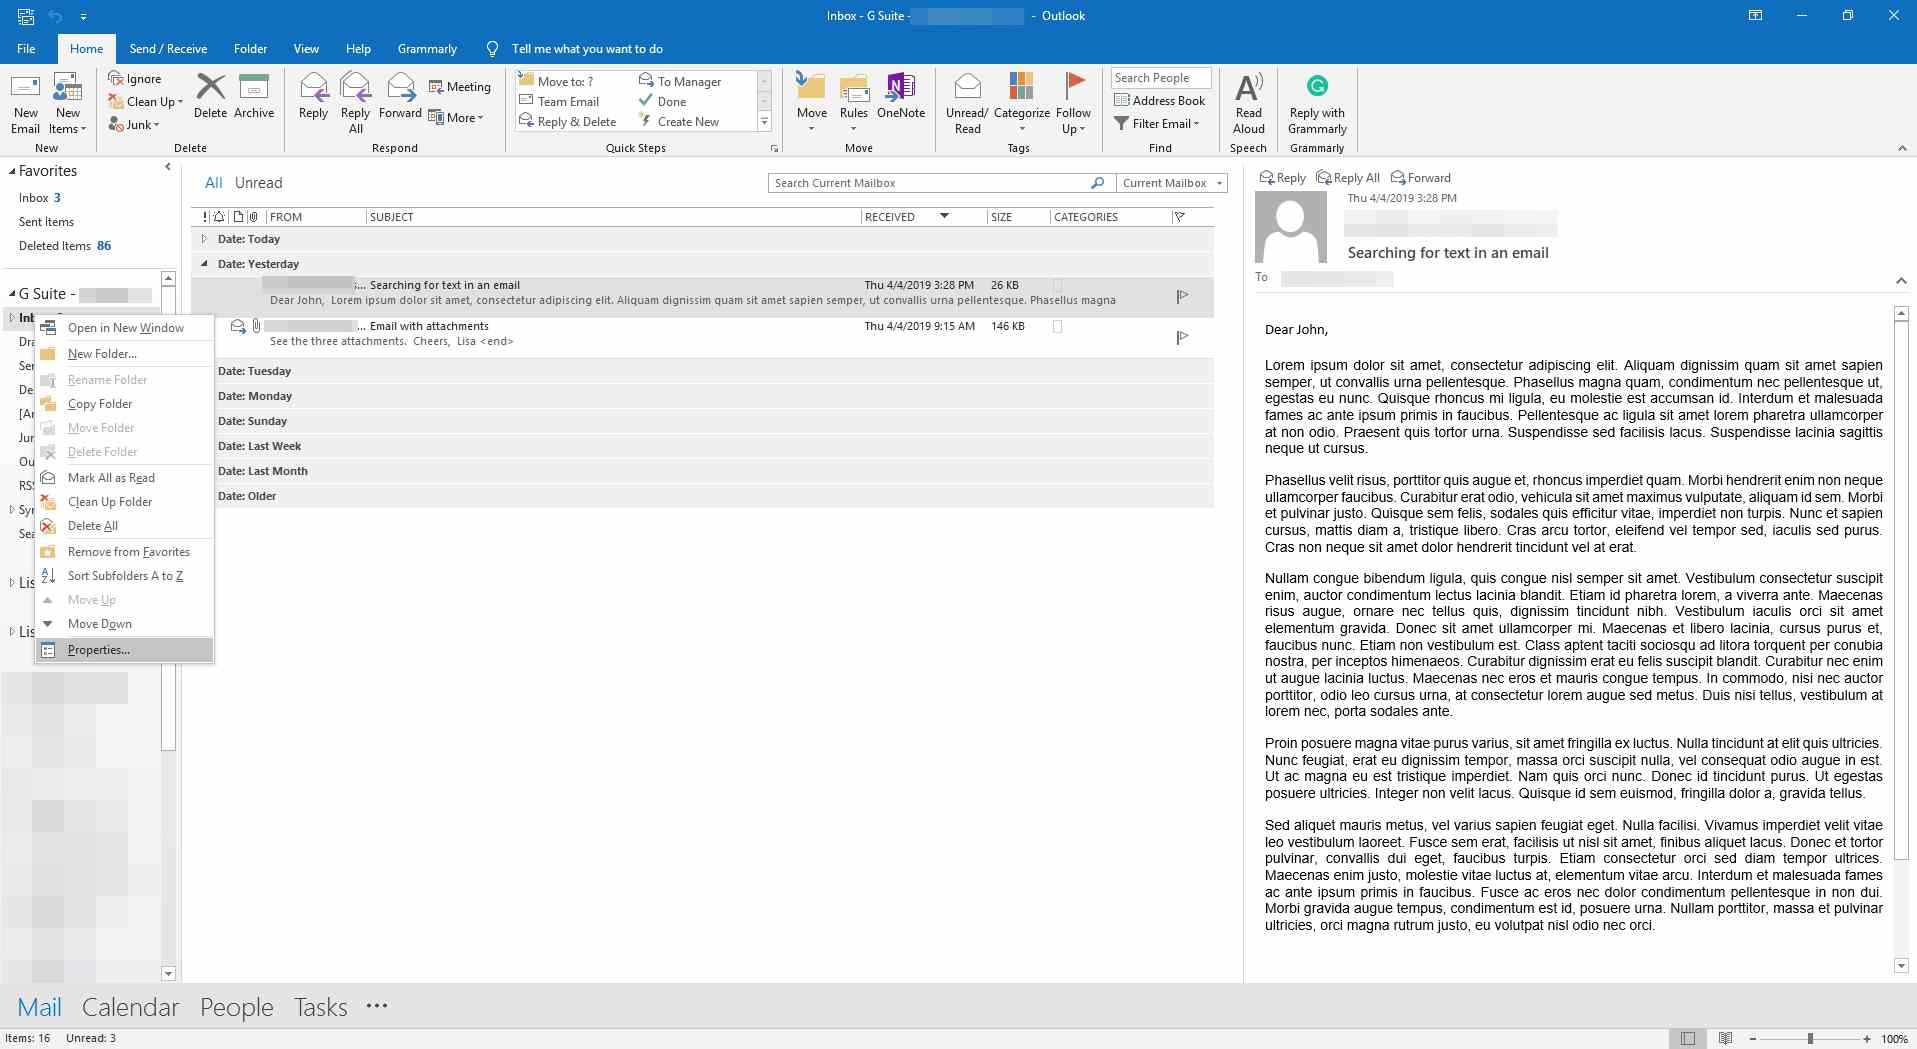 Viewing the context menu for the inbox in Outlook.